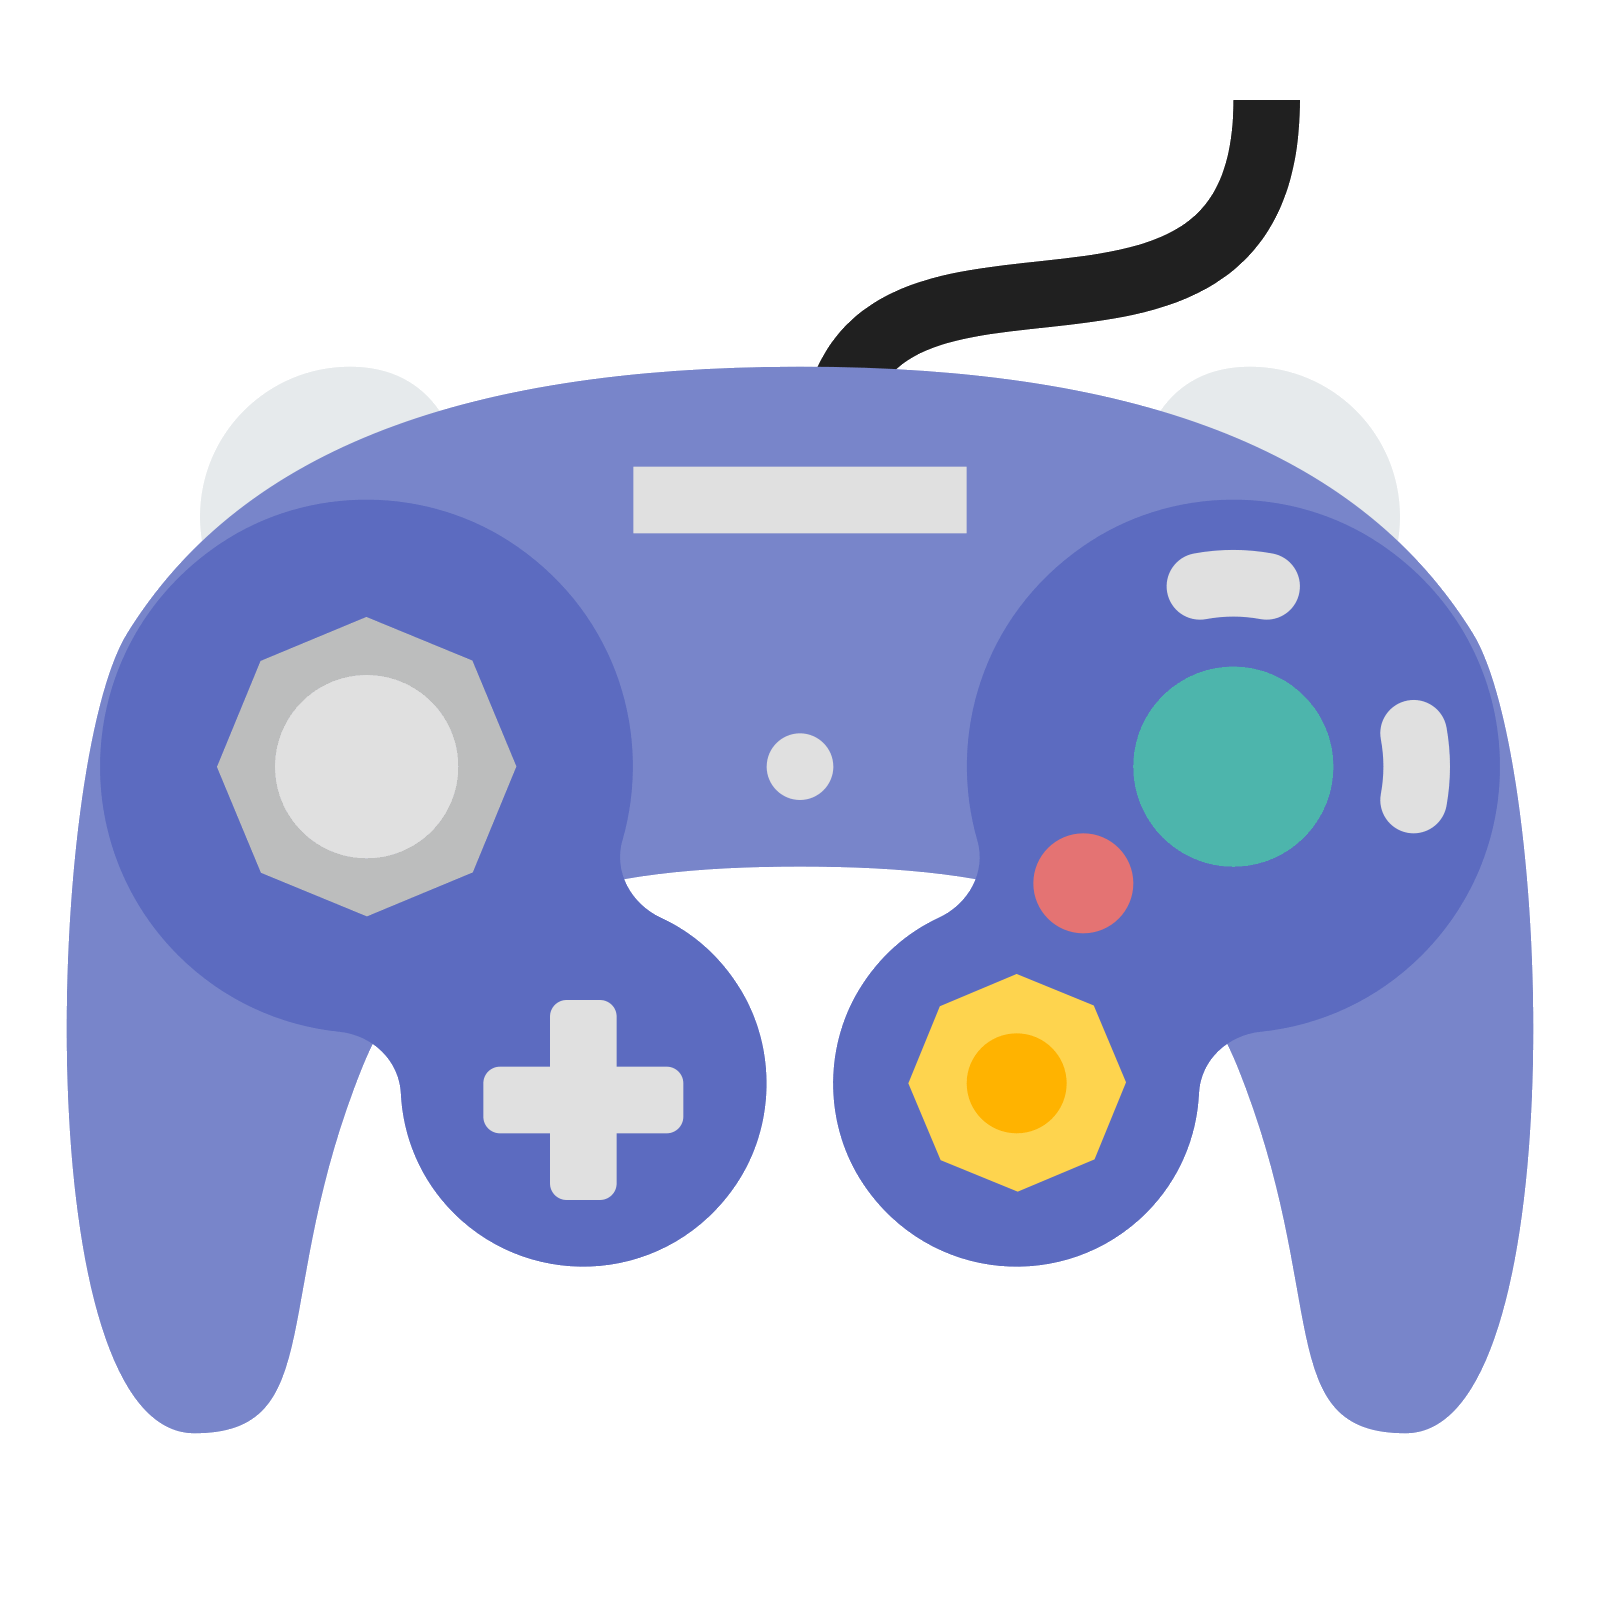 Gamecube buttons png. Controller wii u classic